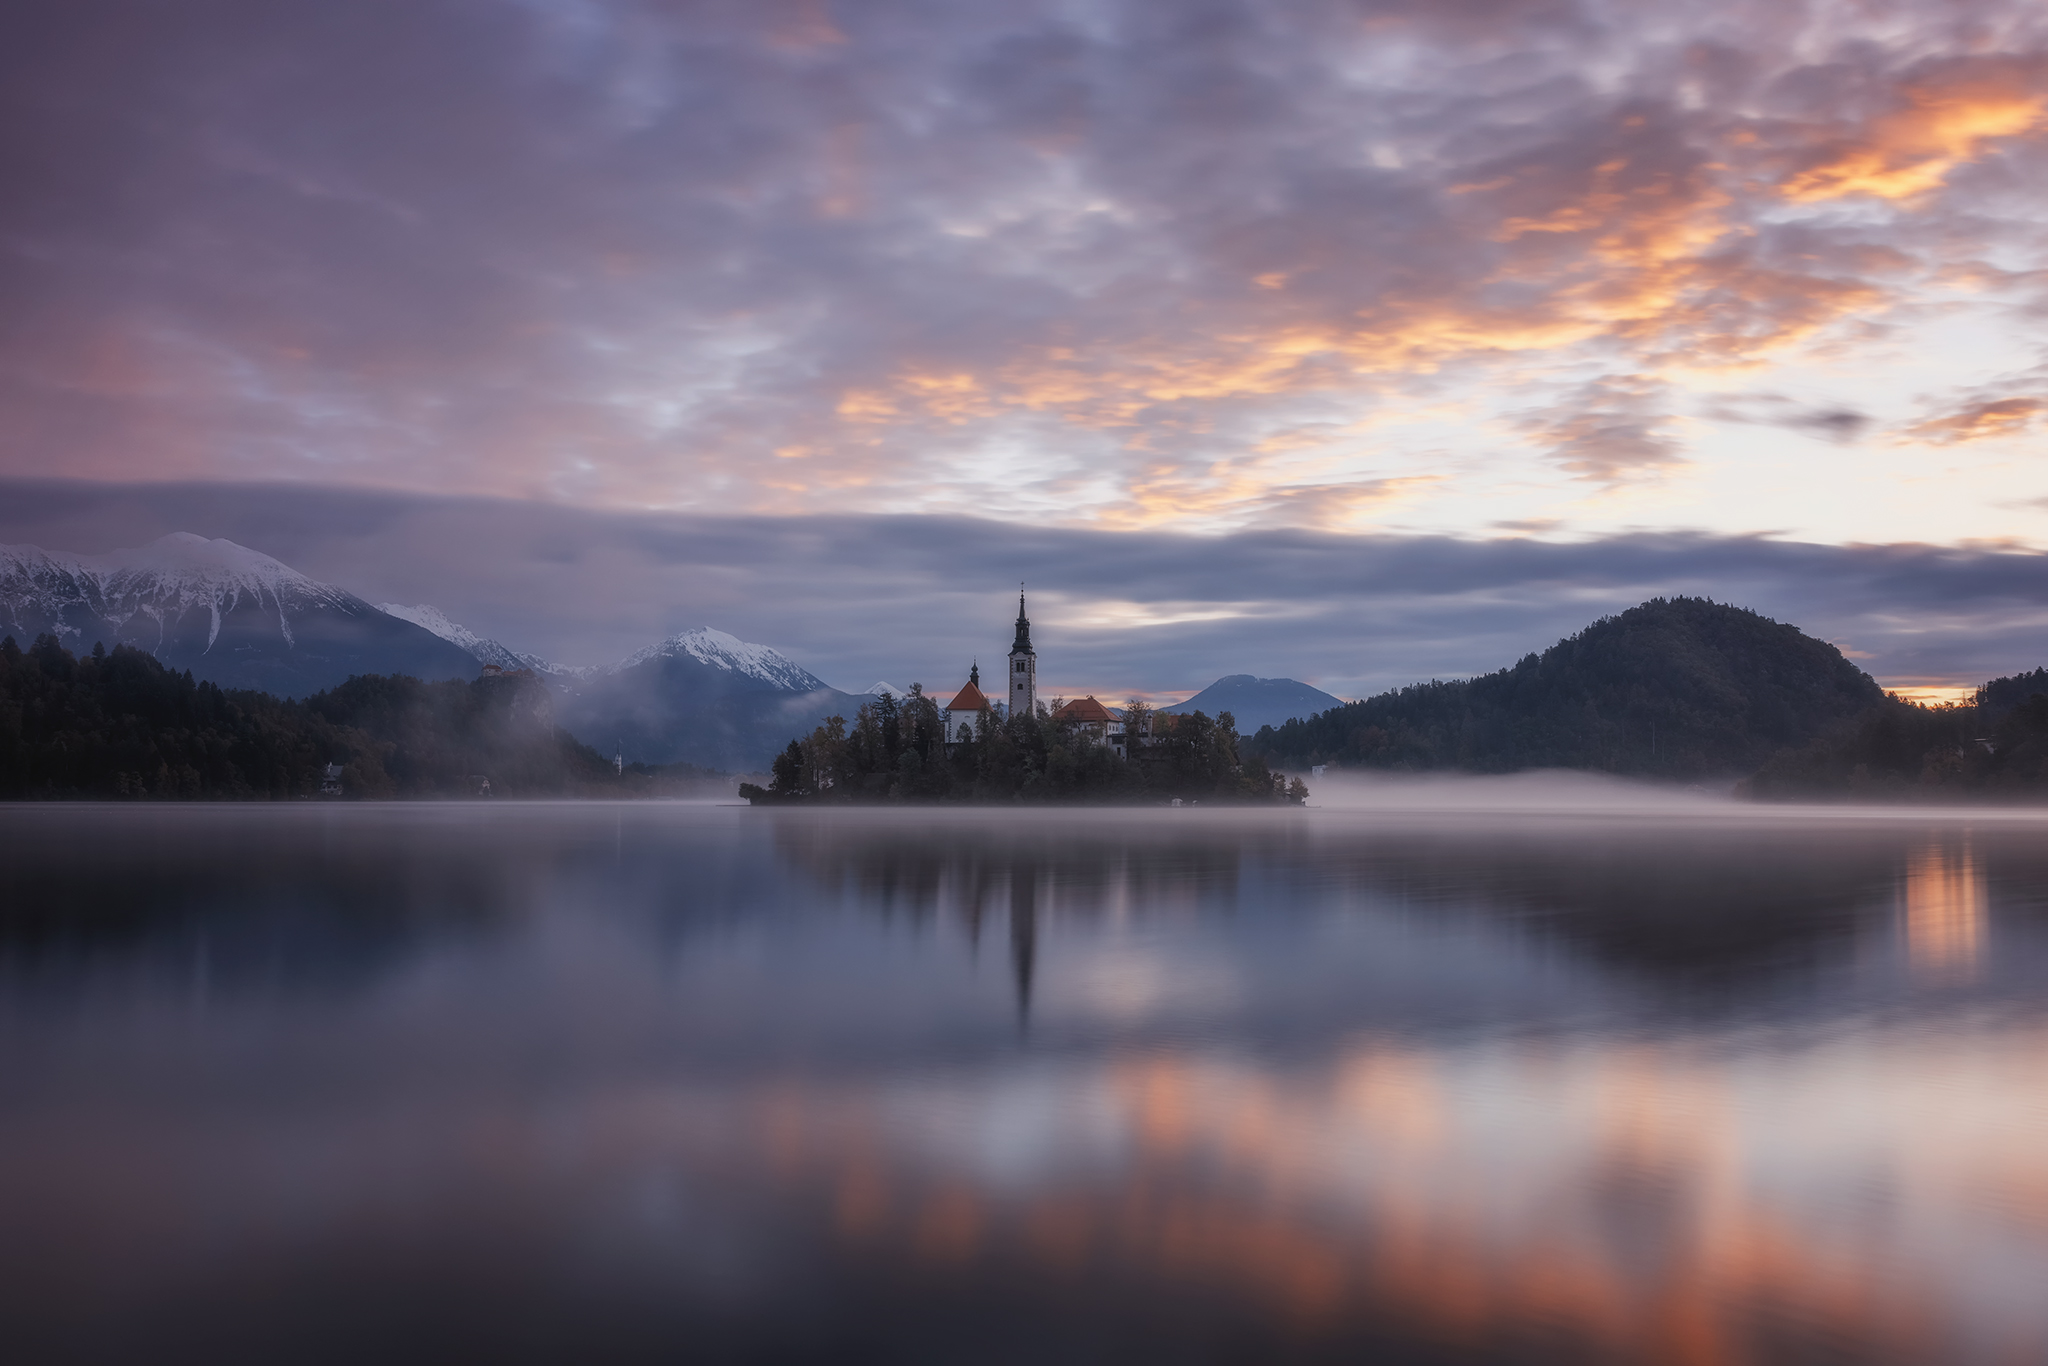 Misty Sunrise, Lake Bled, Slovenia